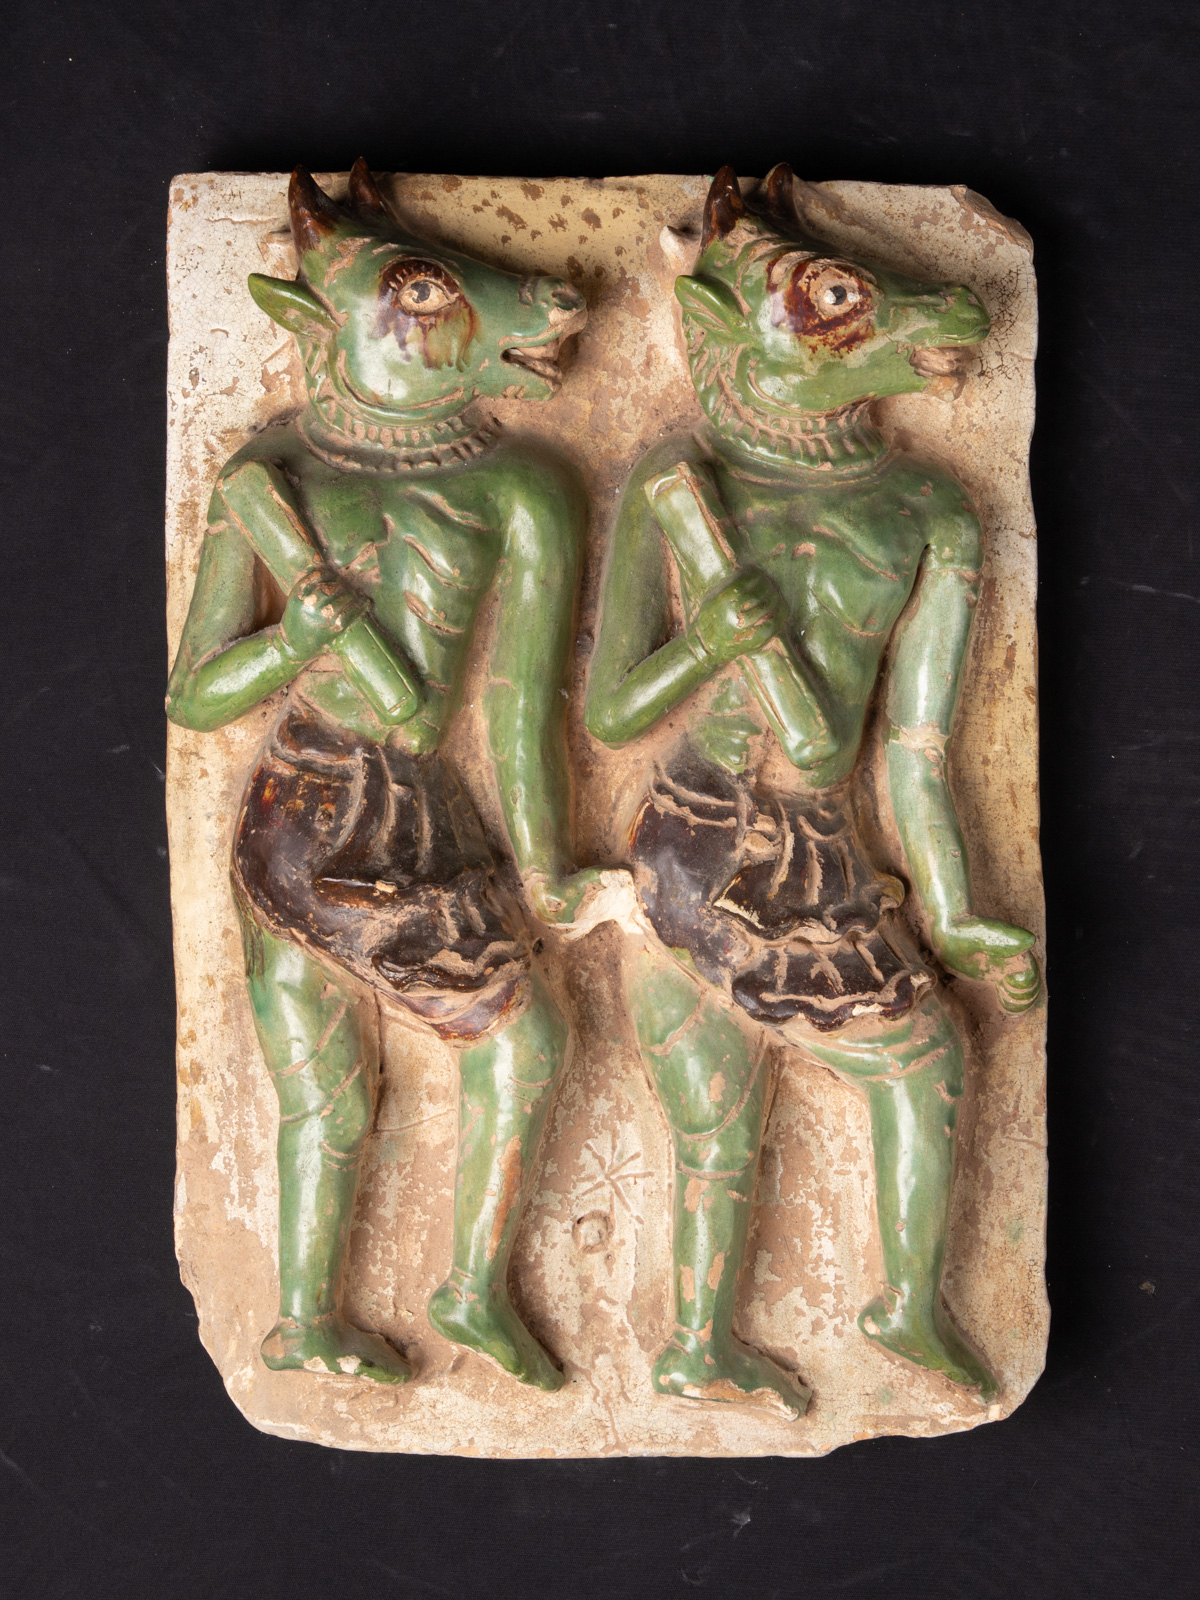 Antique Tile with Maras soldiers from Burma made from Glazed pottery